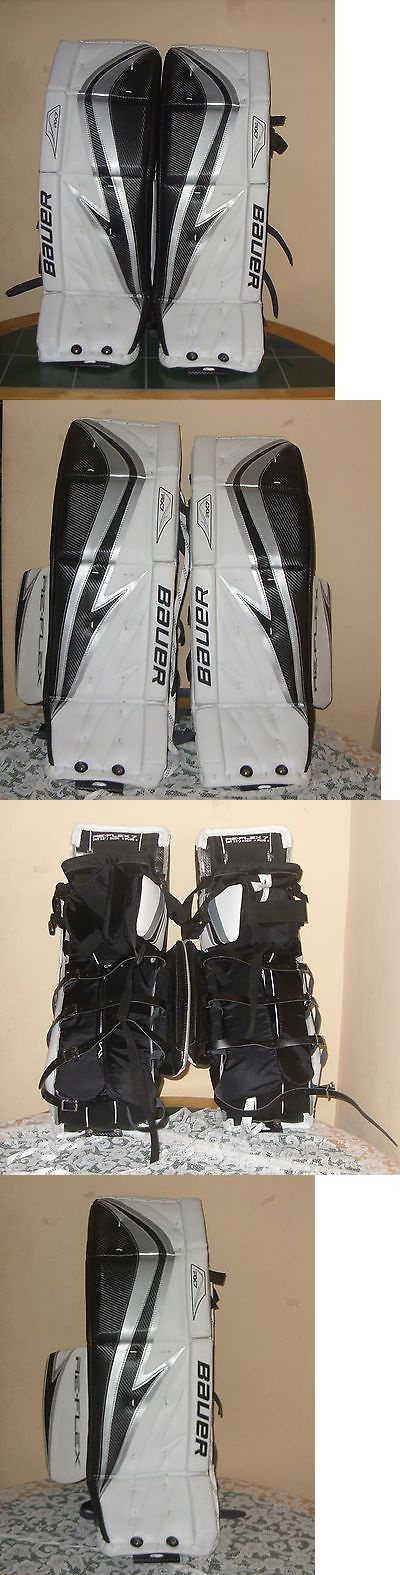 Leg Pads 79764: Bauer Rx7 Re-Flex Goalie Pad Int. 32 81Cm Ice Hockey Goalie Pads -> BUY IT NOW ONLY: $599.99 on eBay!